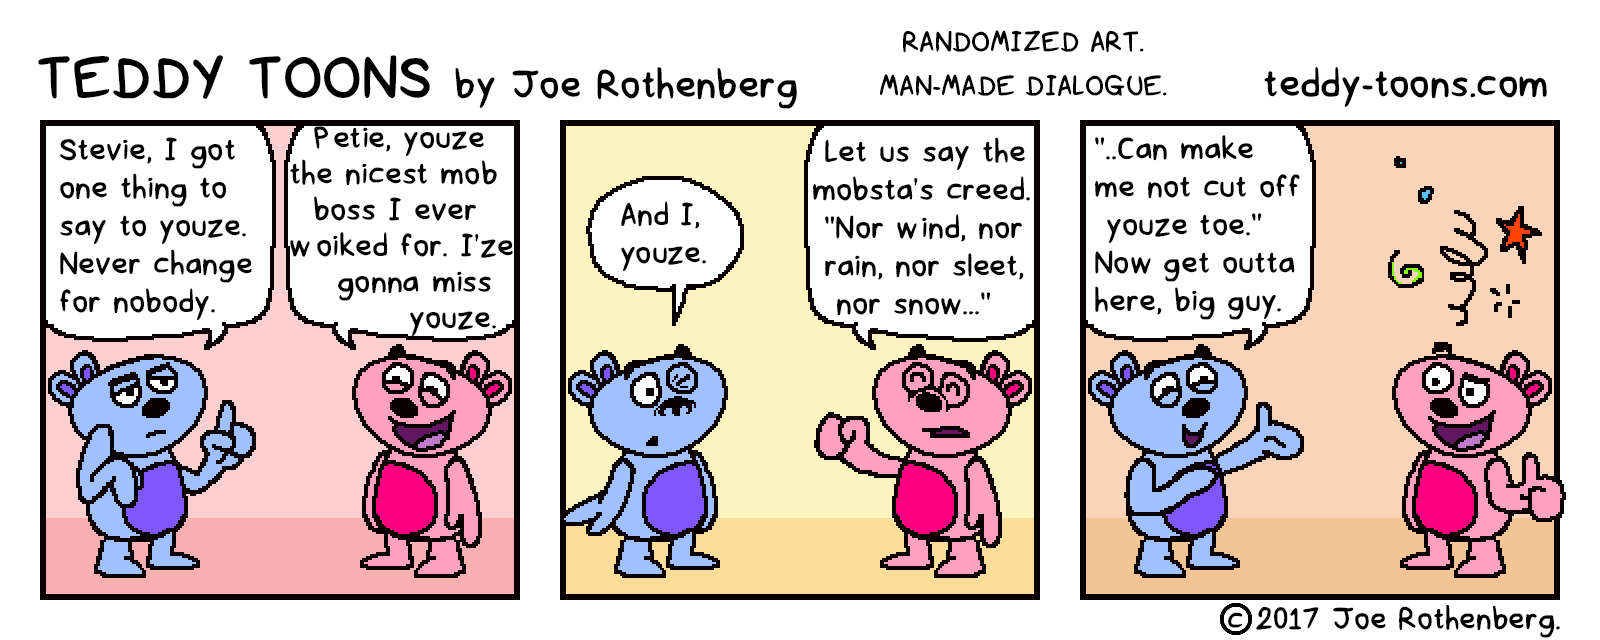 01-26-17.png